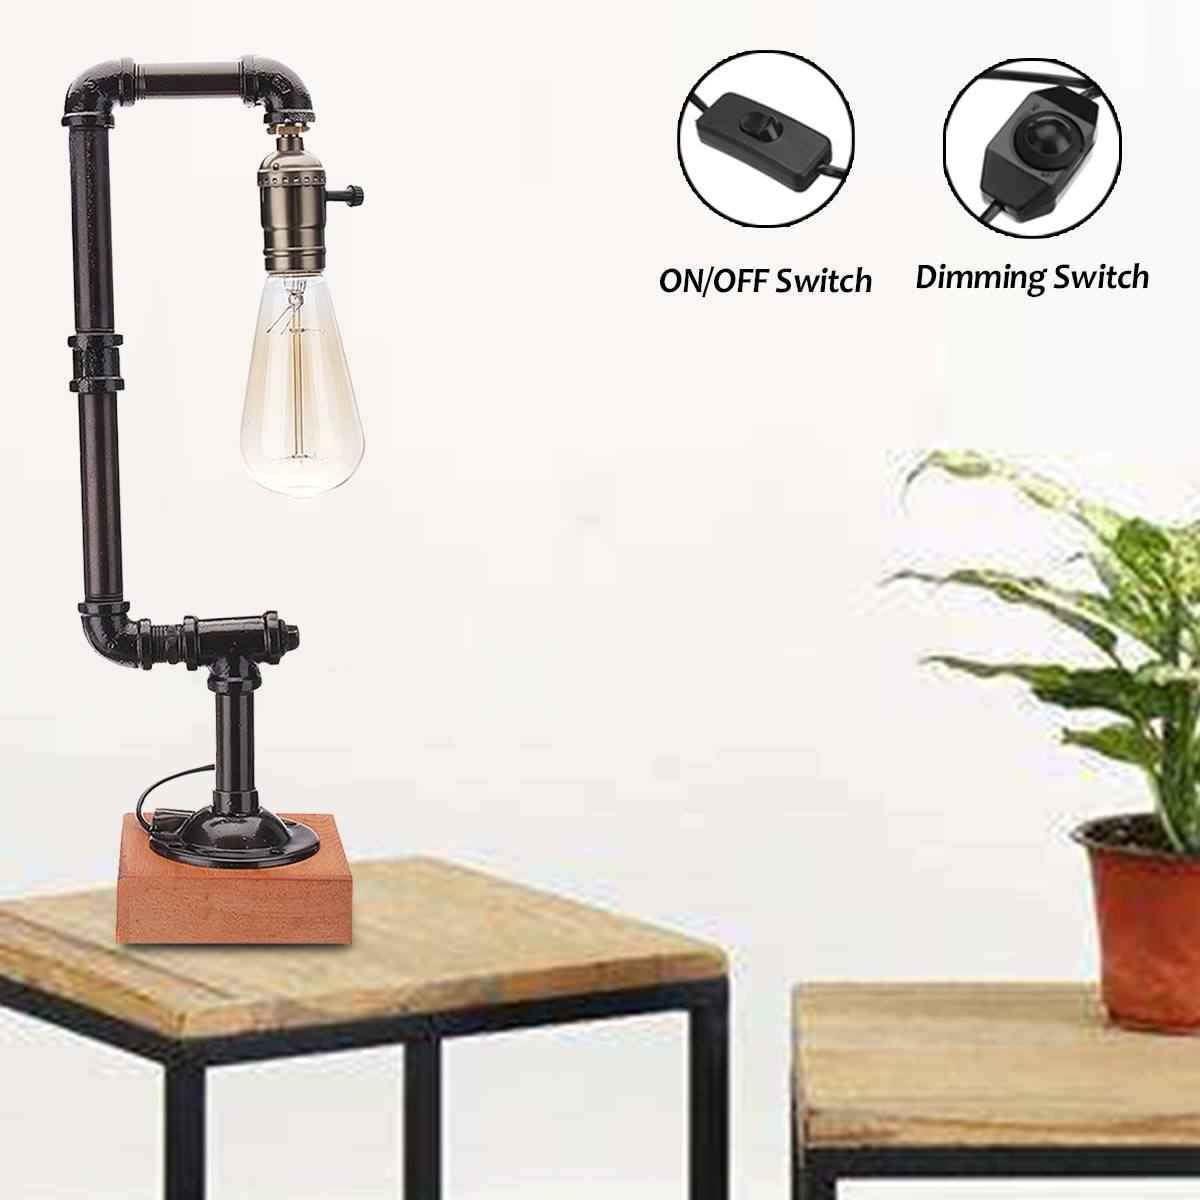 E27 Retro Industrial Style Iron Water Pipe Desk Table Lamp Light Switch Lighting For Kids Learning Home Bedroom Decor